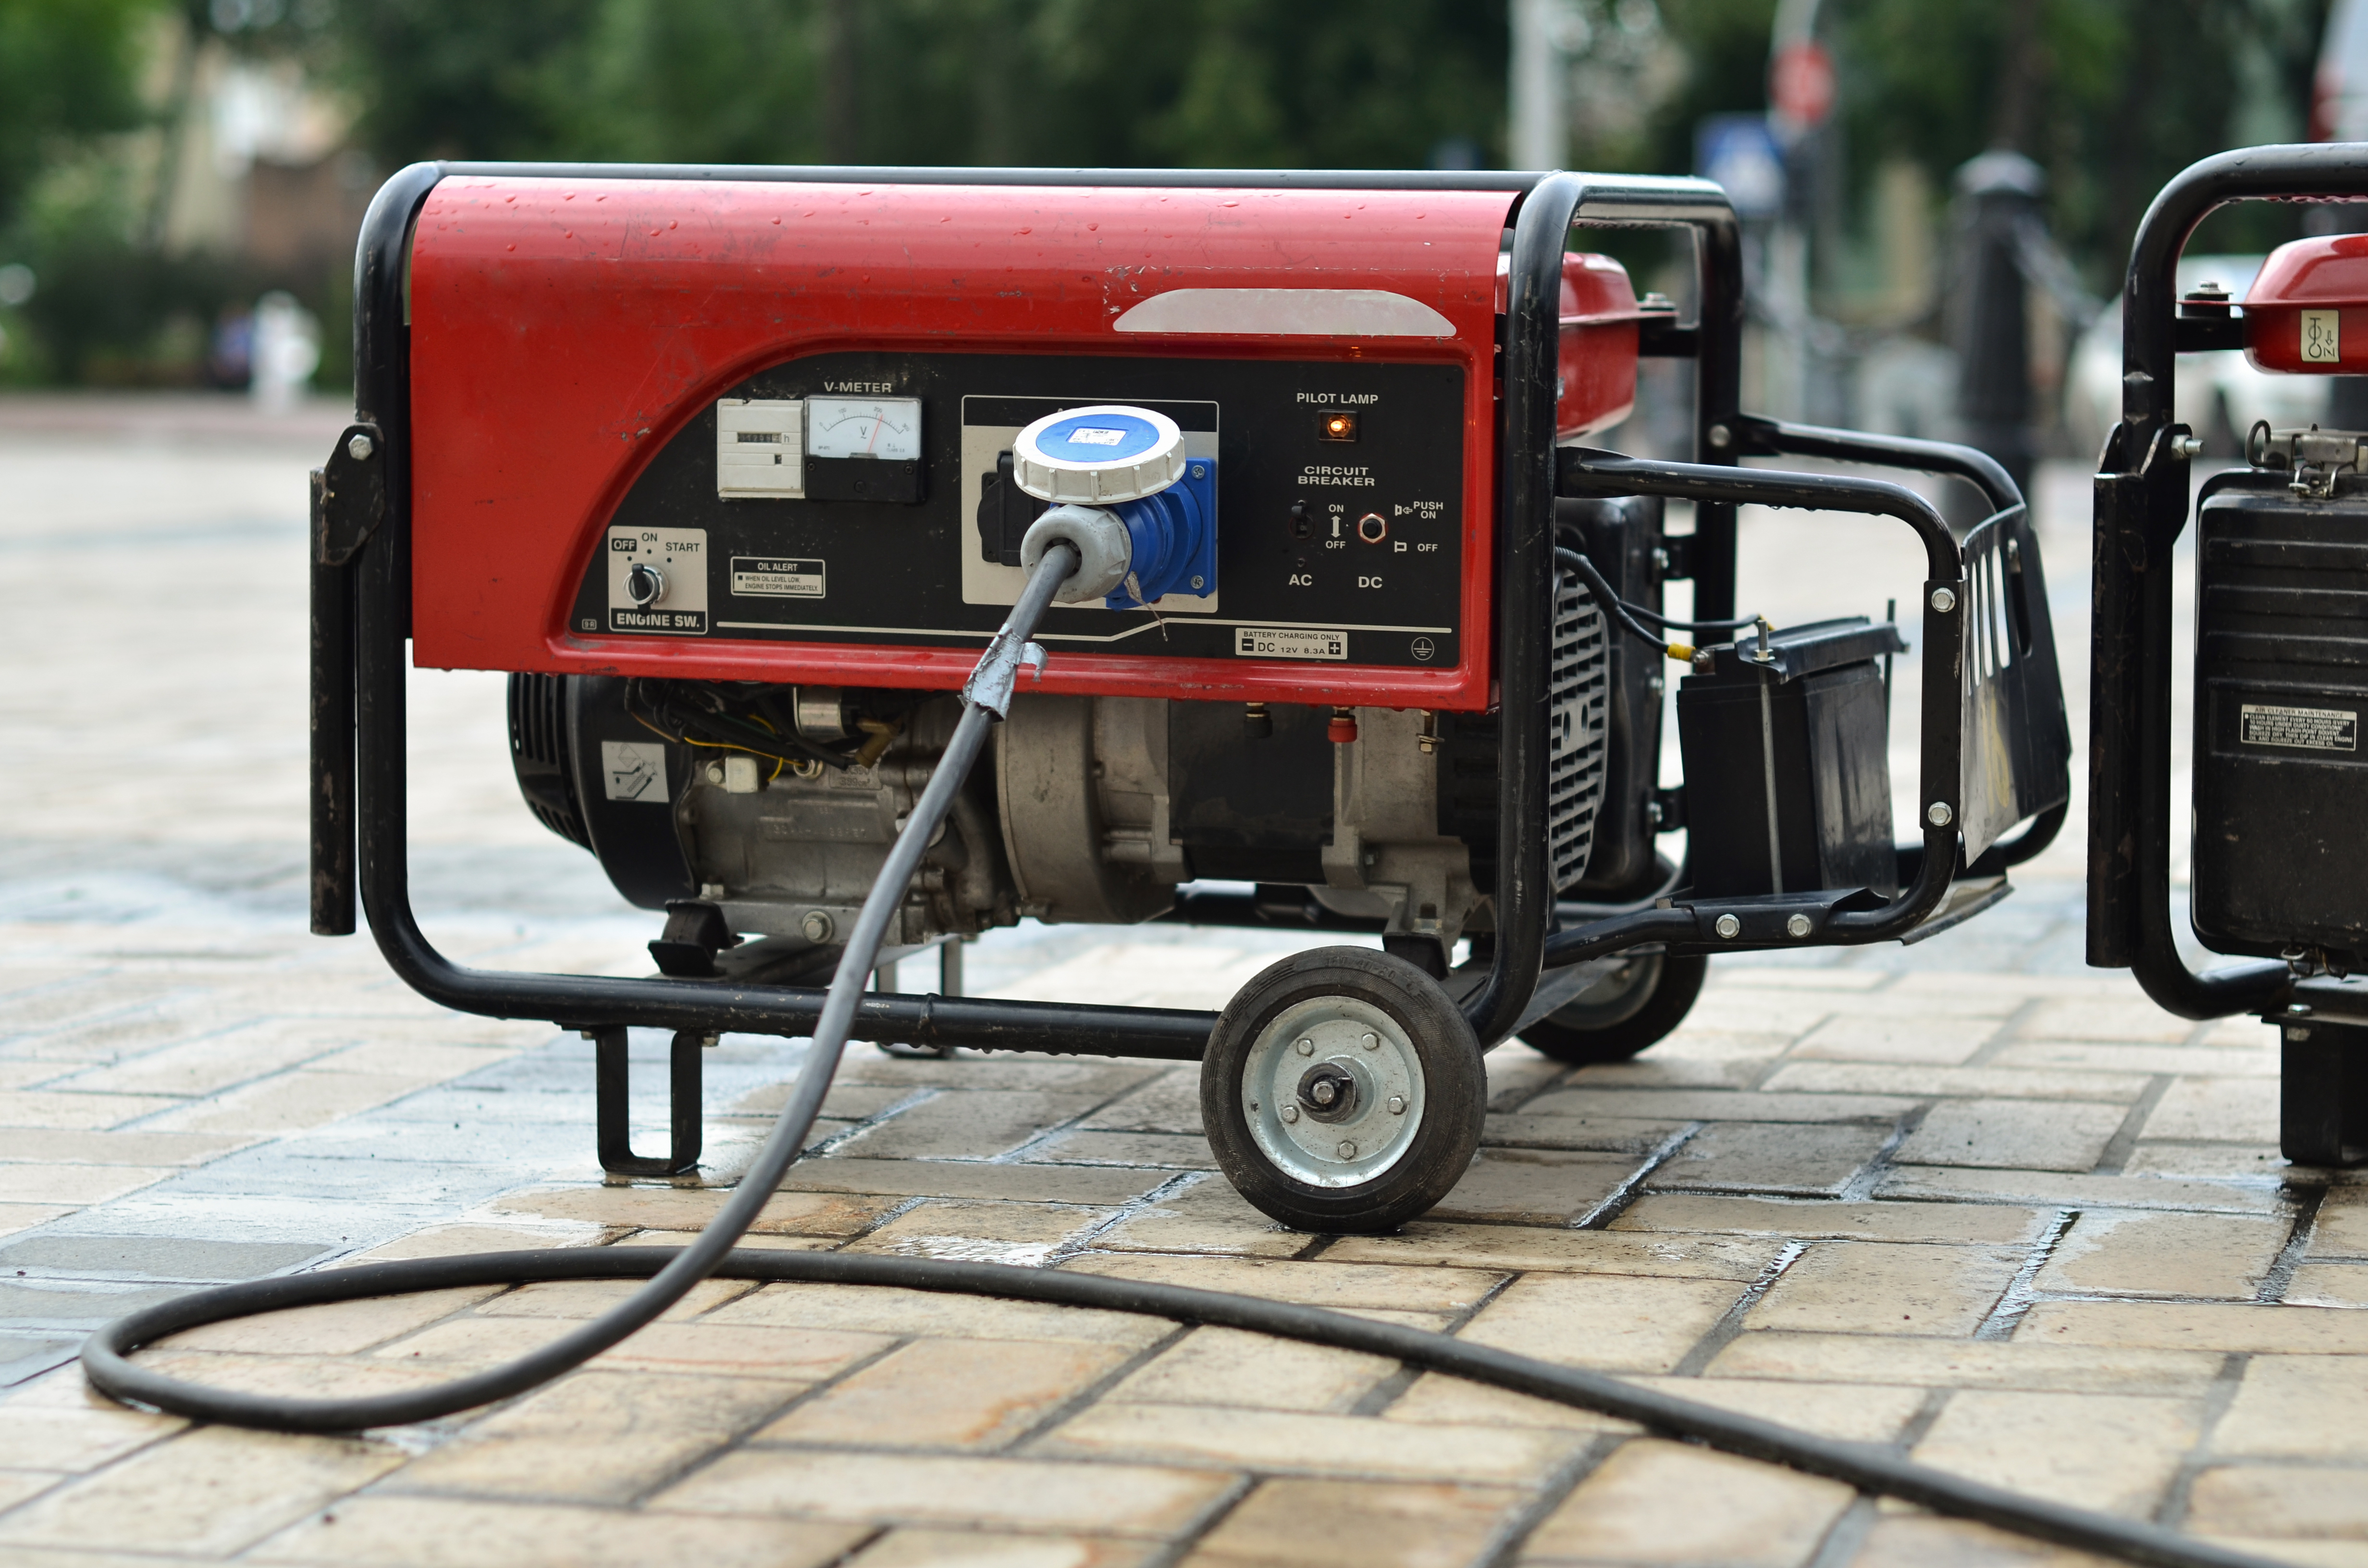 Red Portable generator